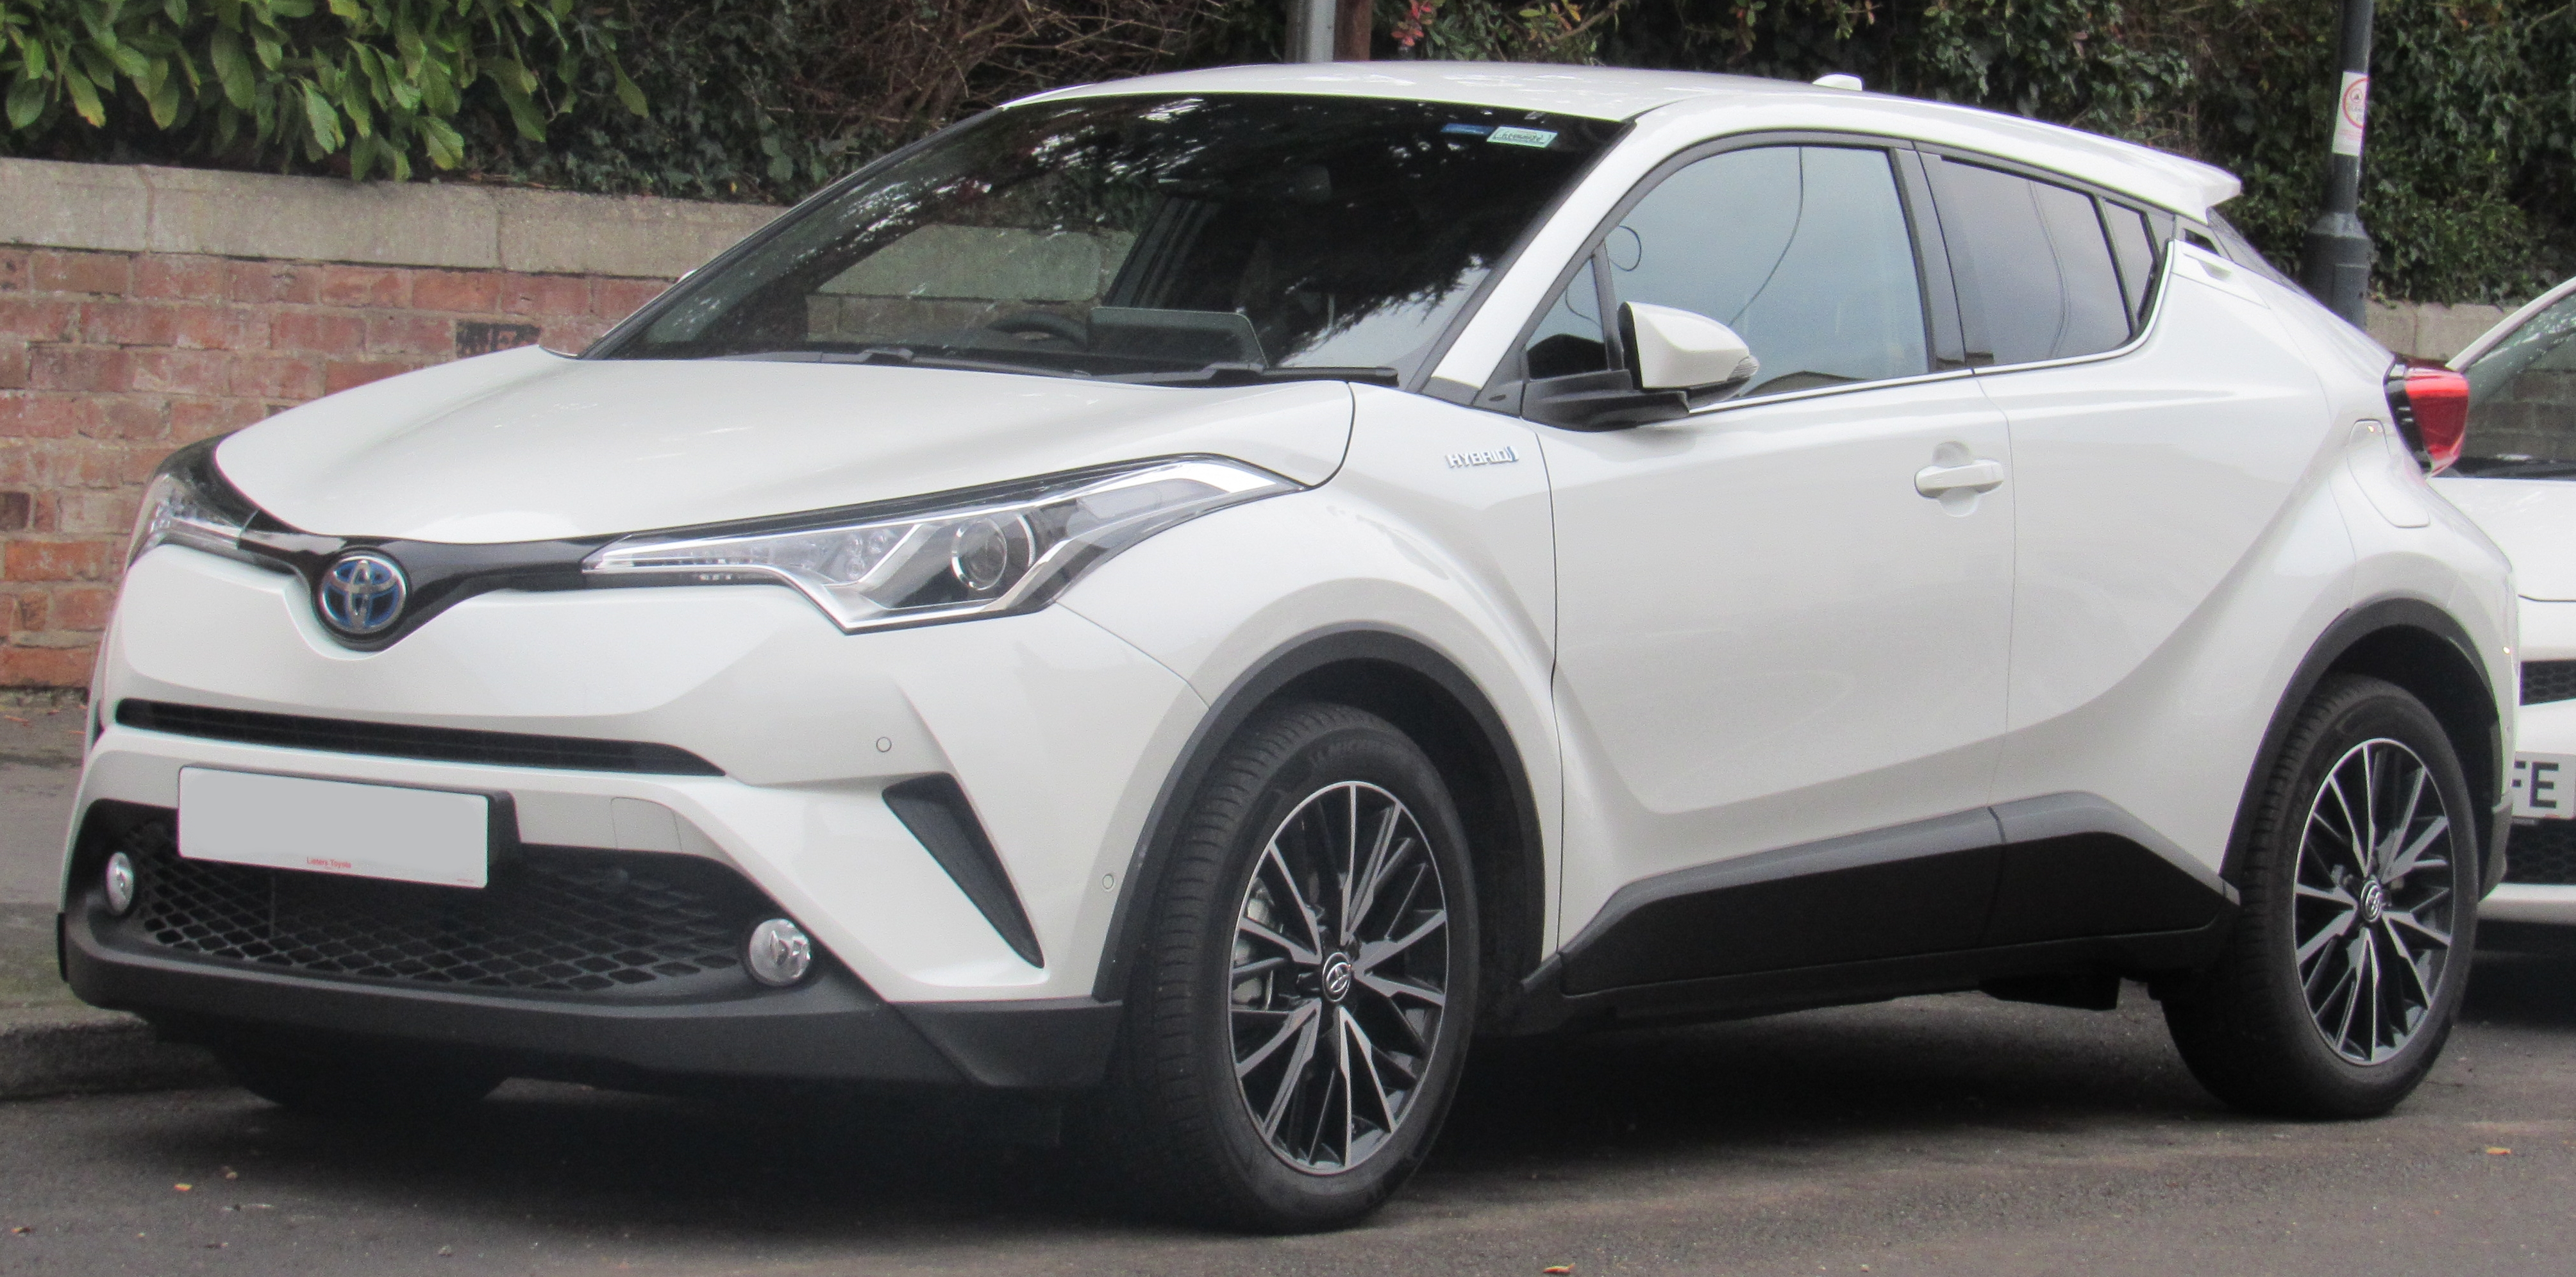 Mobil Chr Toyota >> Toyota C-HR - Wikiwand